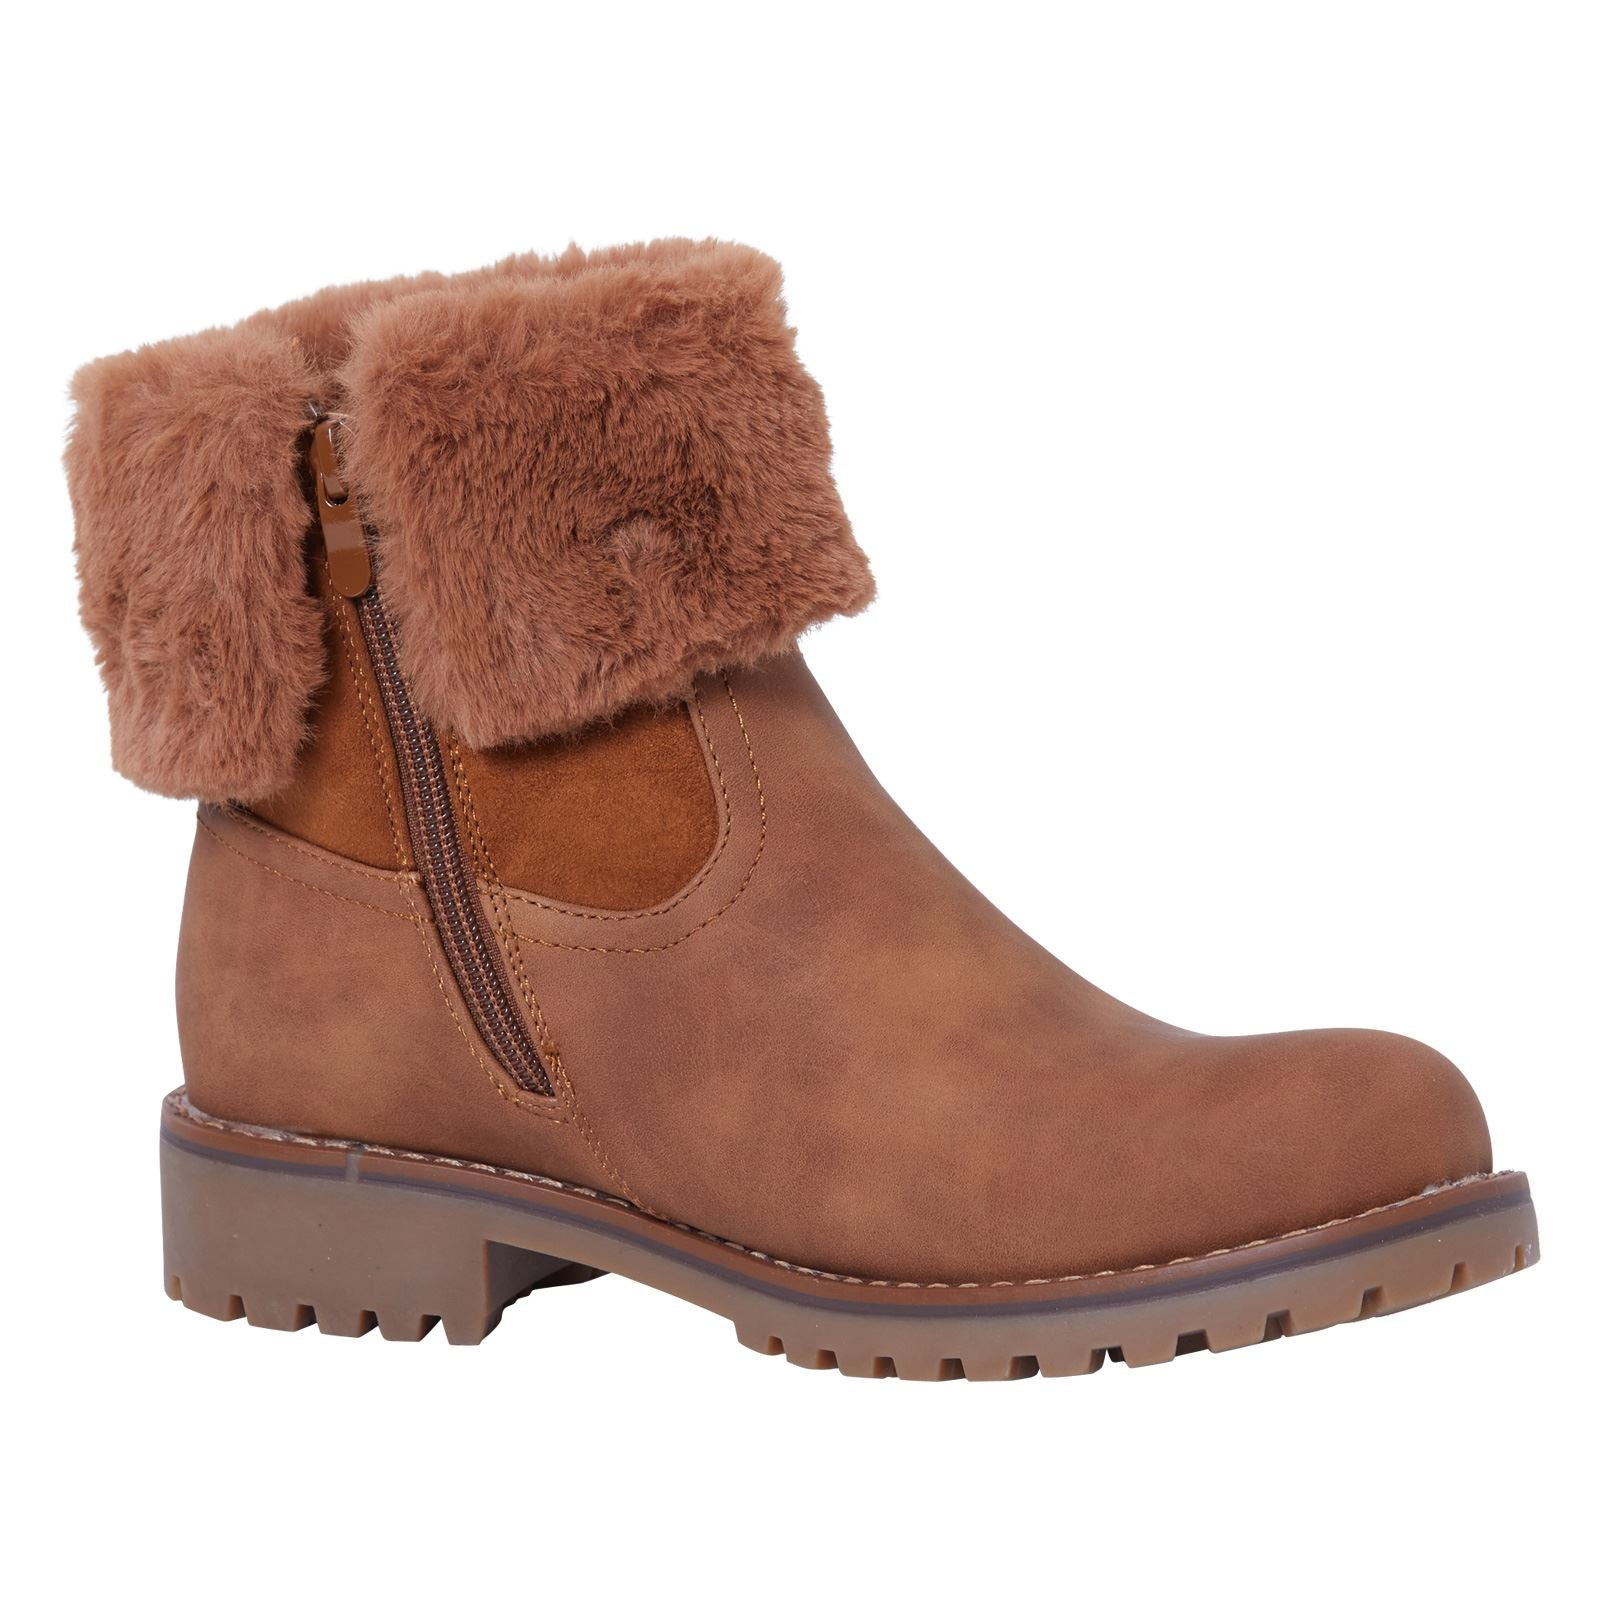 Annalee Fur Lined Ankle Boots in Camel Nubuck